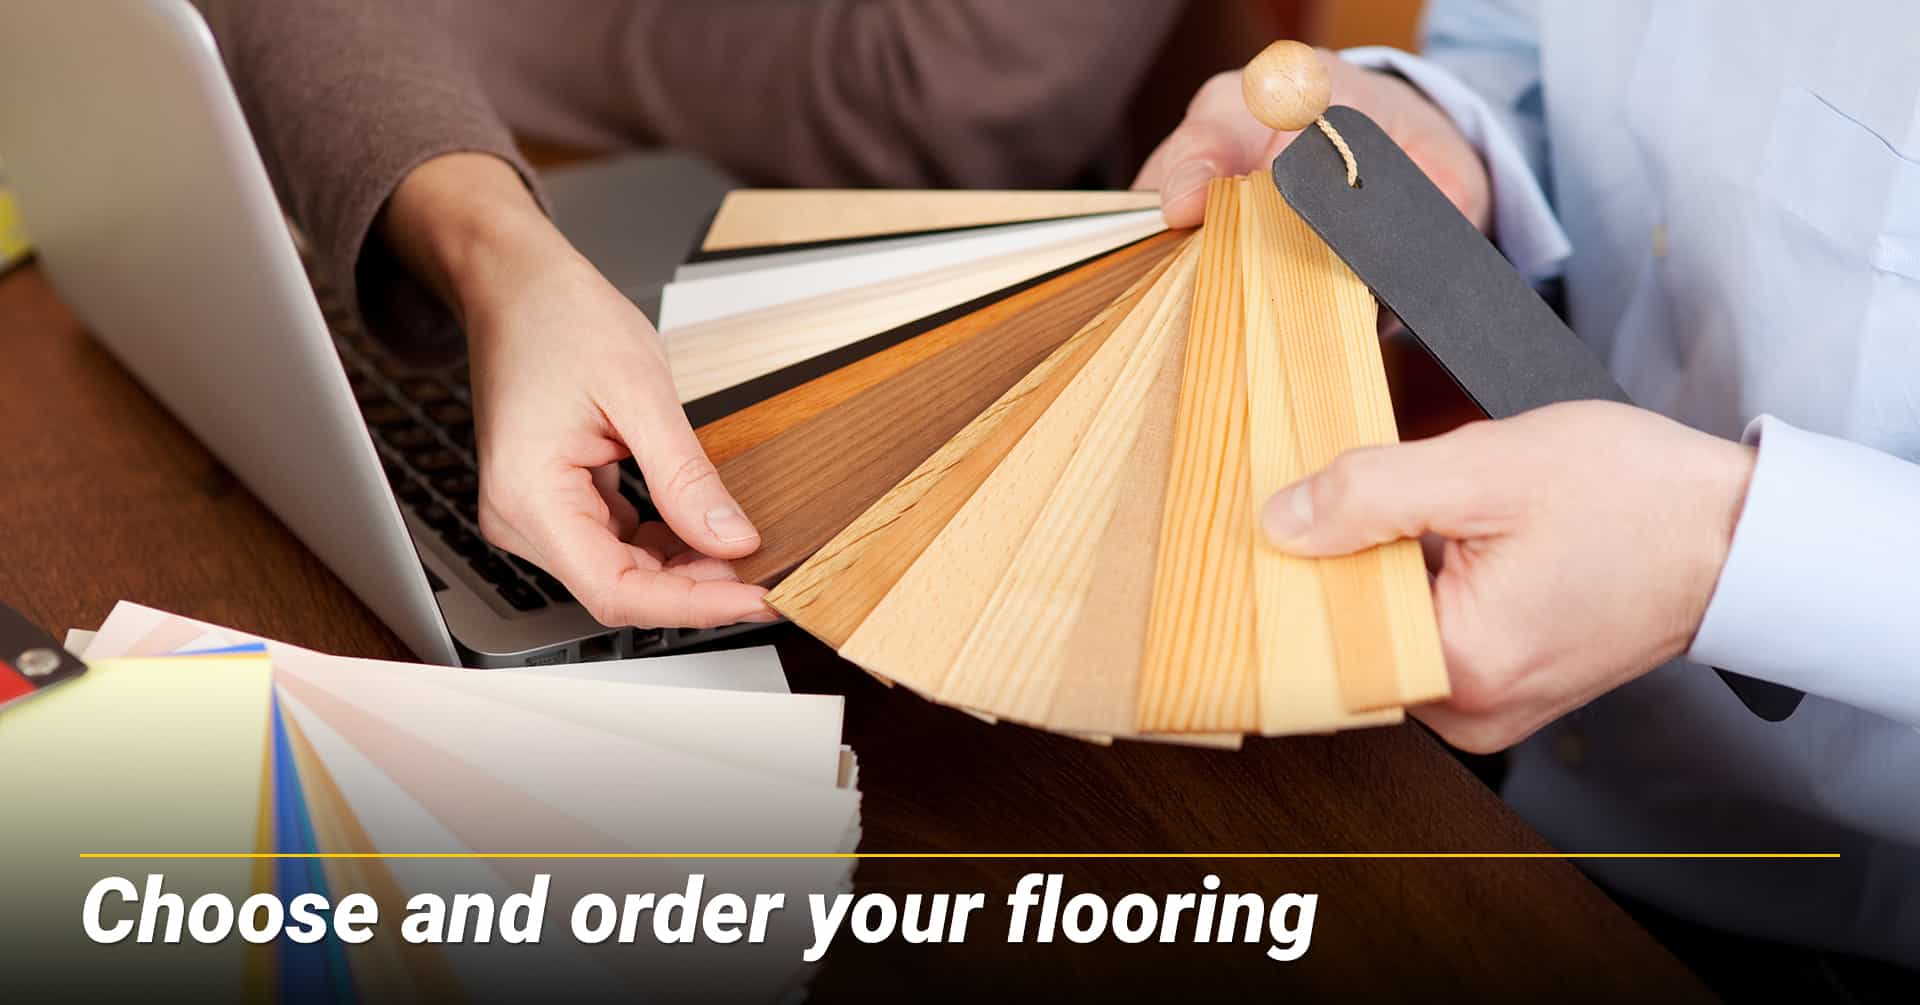 Choose and order your flooring